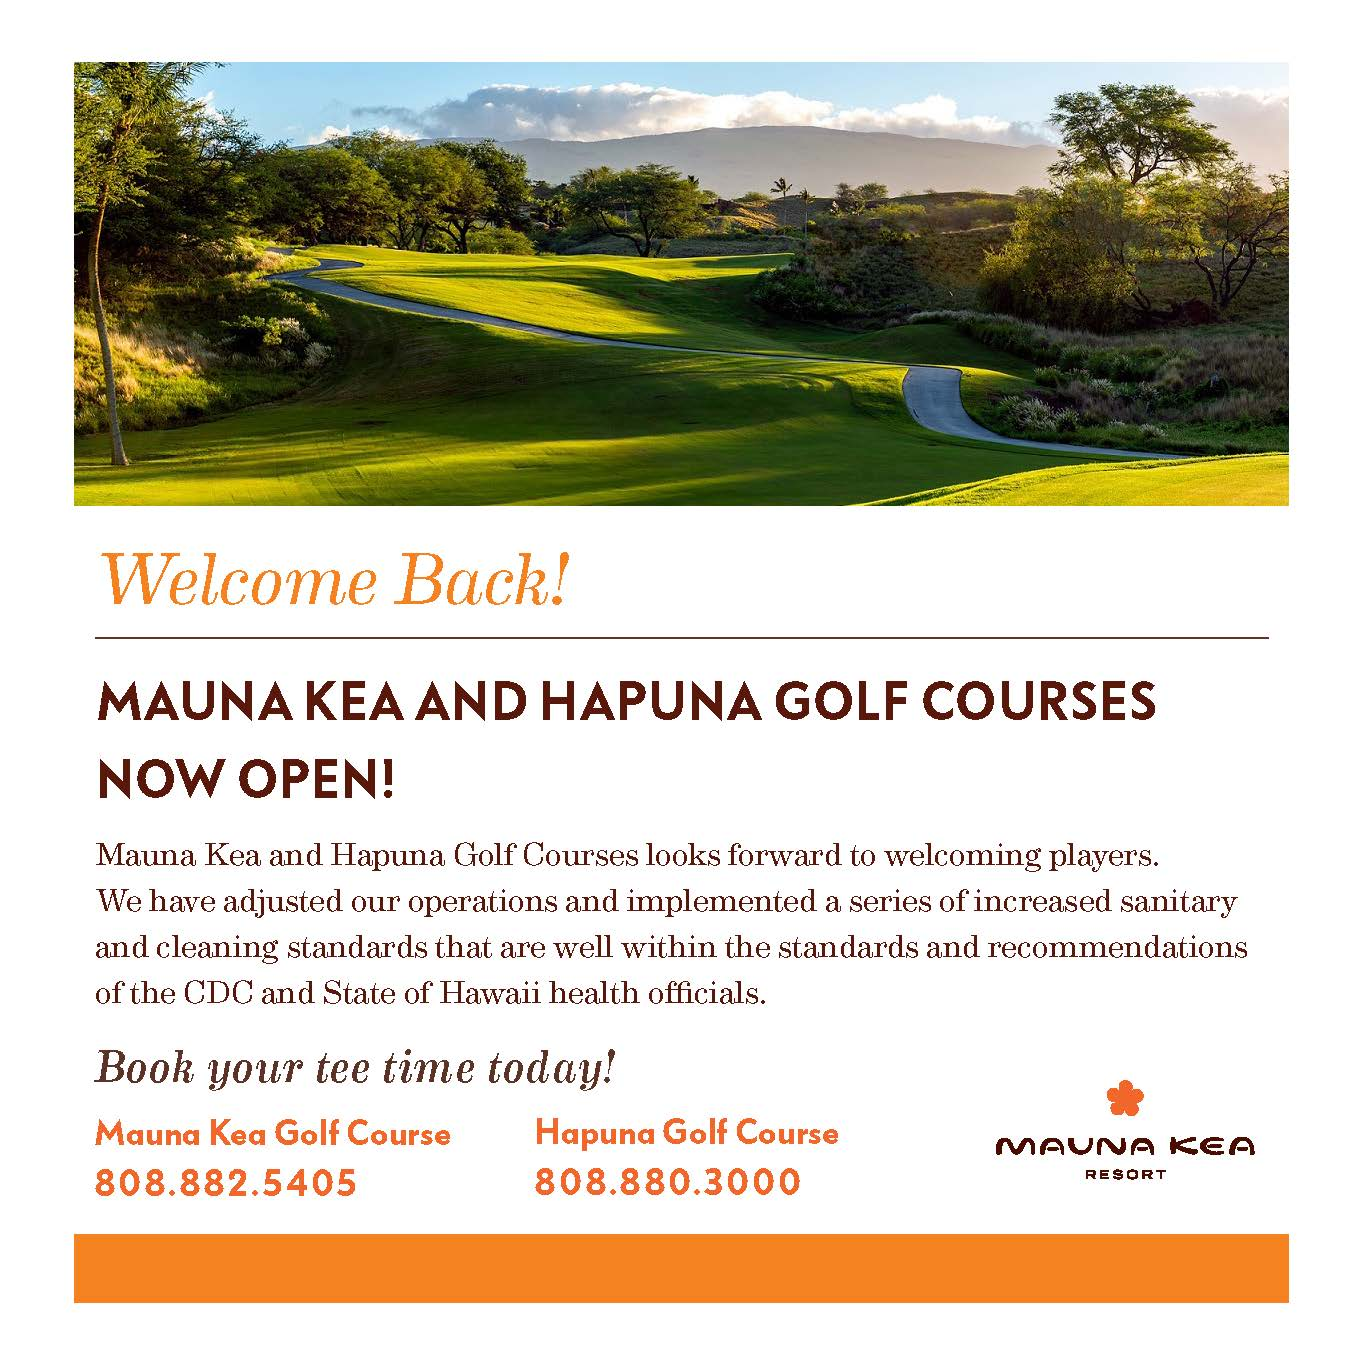 Mauna-Kea-650x650-KKCC-Member-Marketplace-JUNE-2020---Golf-Reopening(1).jpg